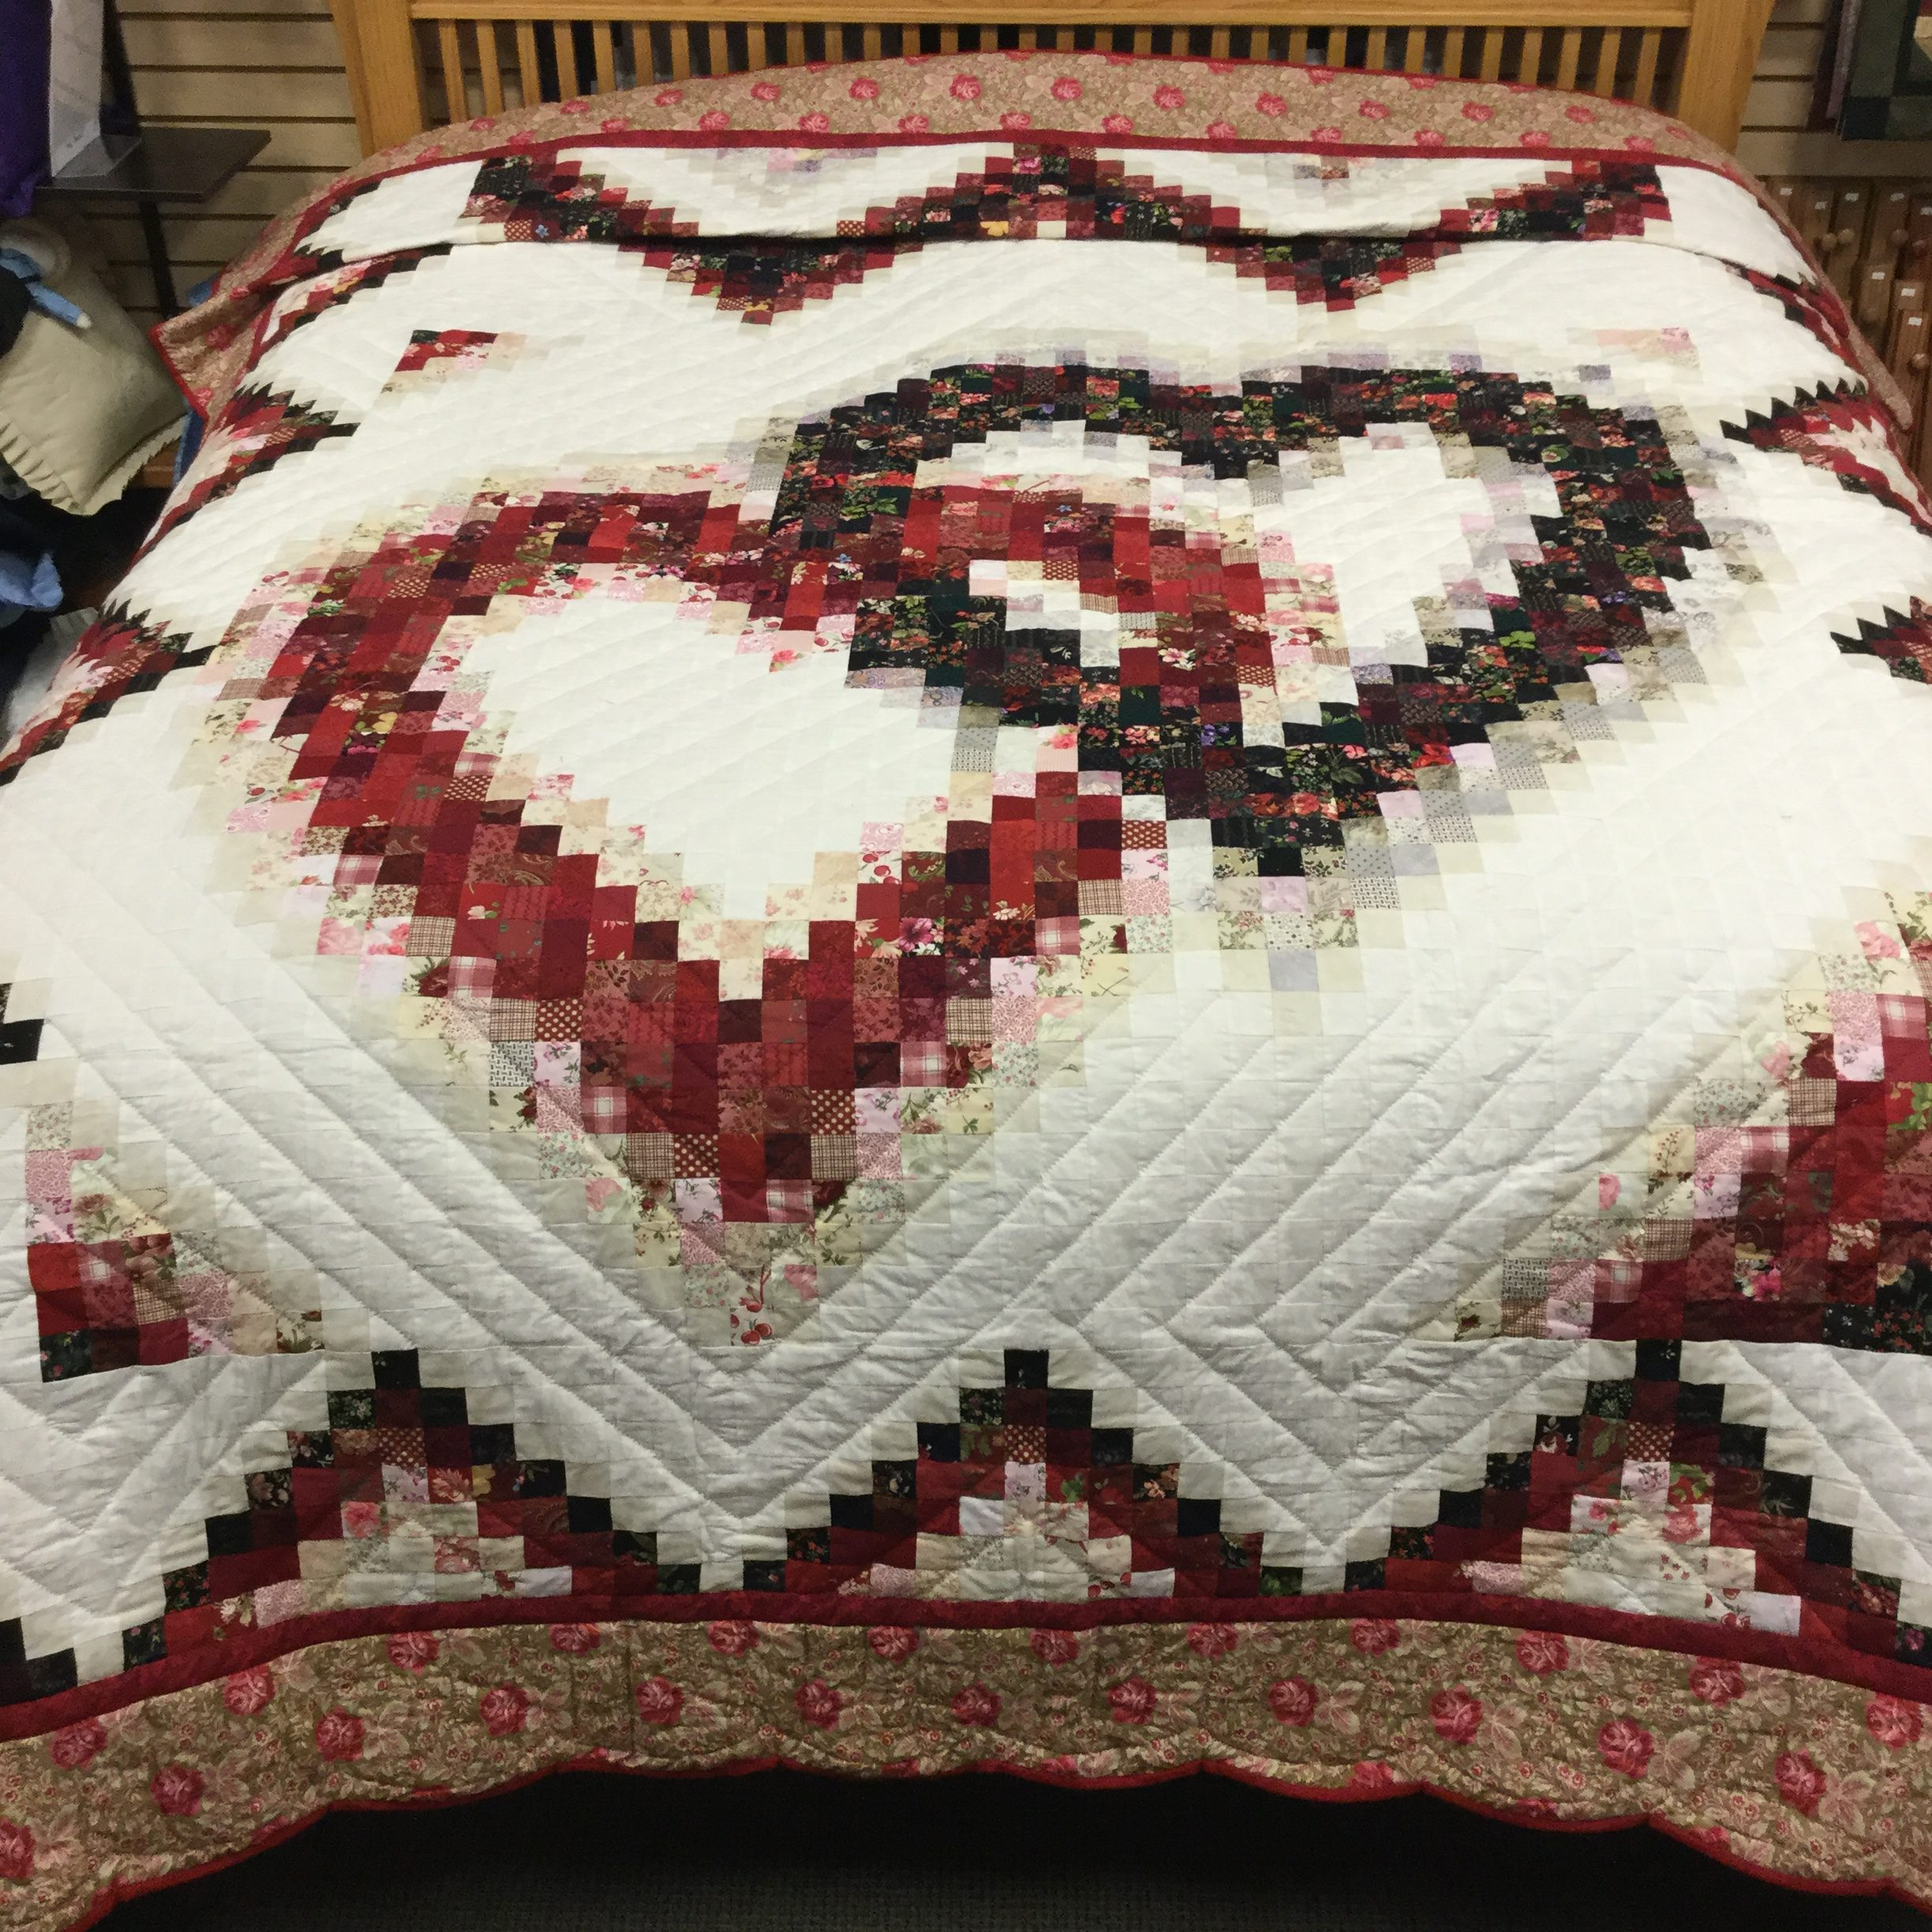 Linking Hearts Quilt Family Farm Handcrafts King